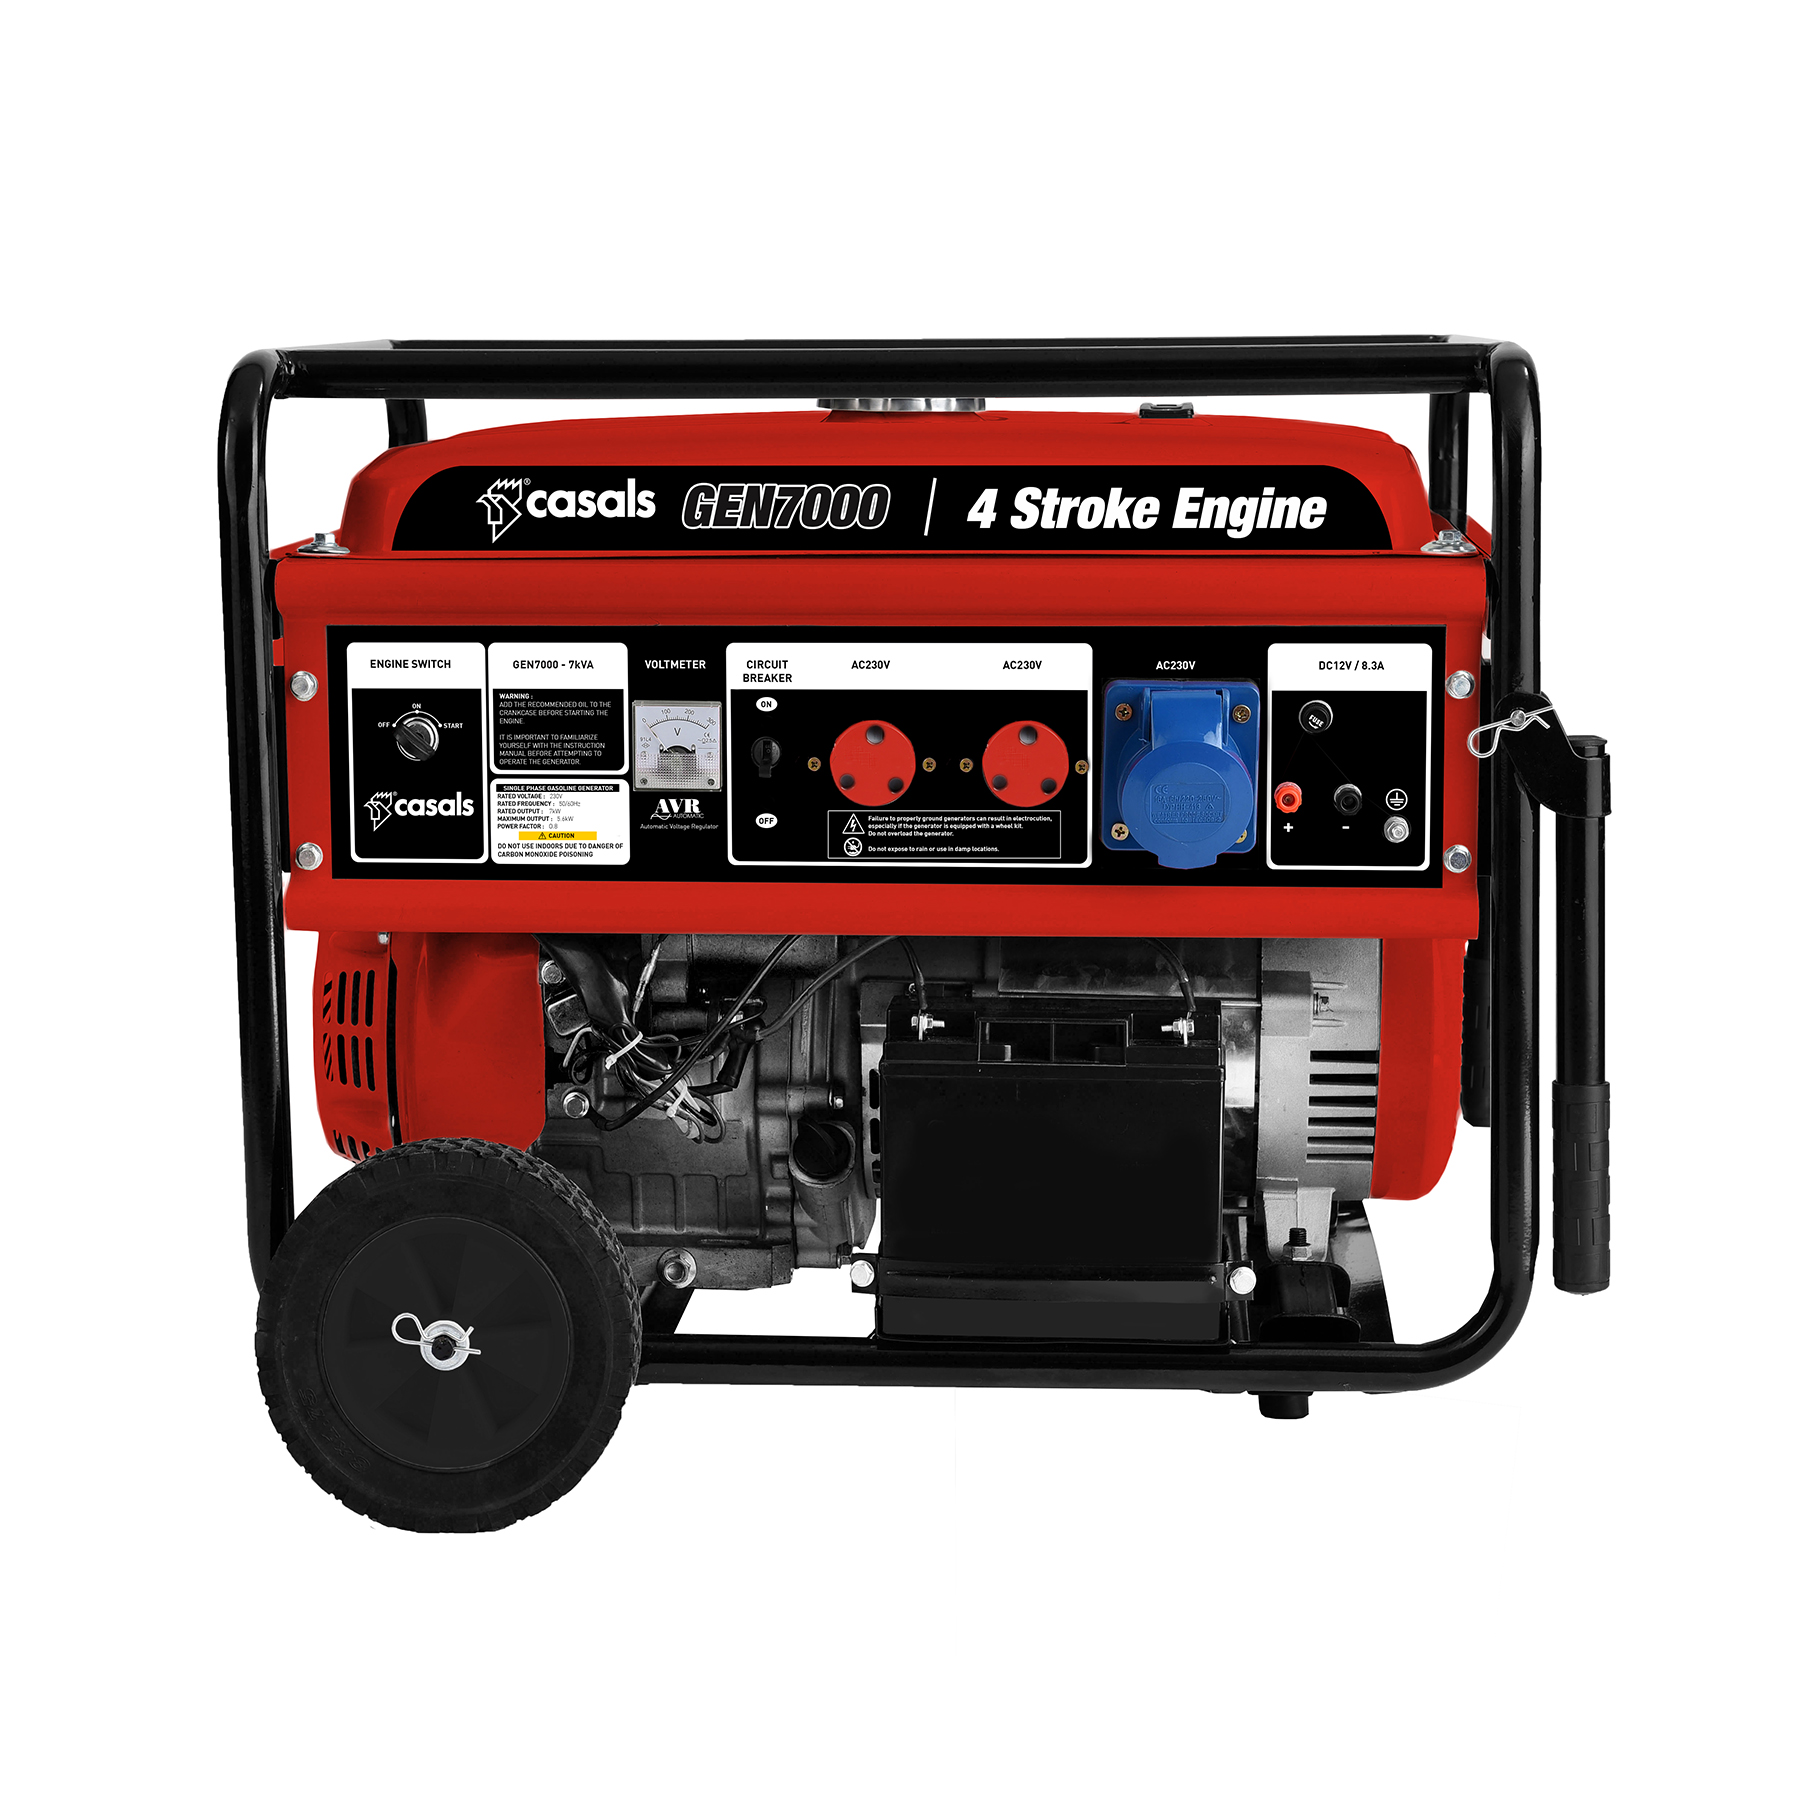 Casals Generator Electric / Recoil Start Steel Red Single Phase4 Stroke 5